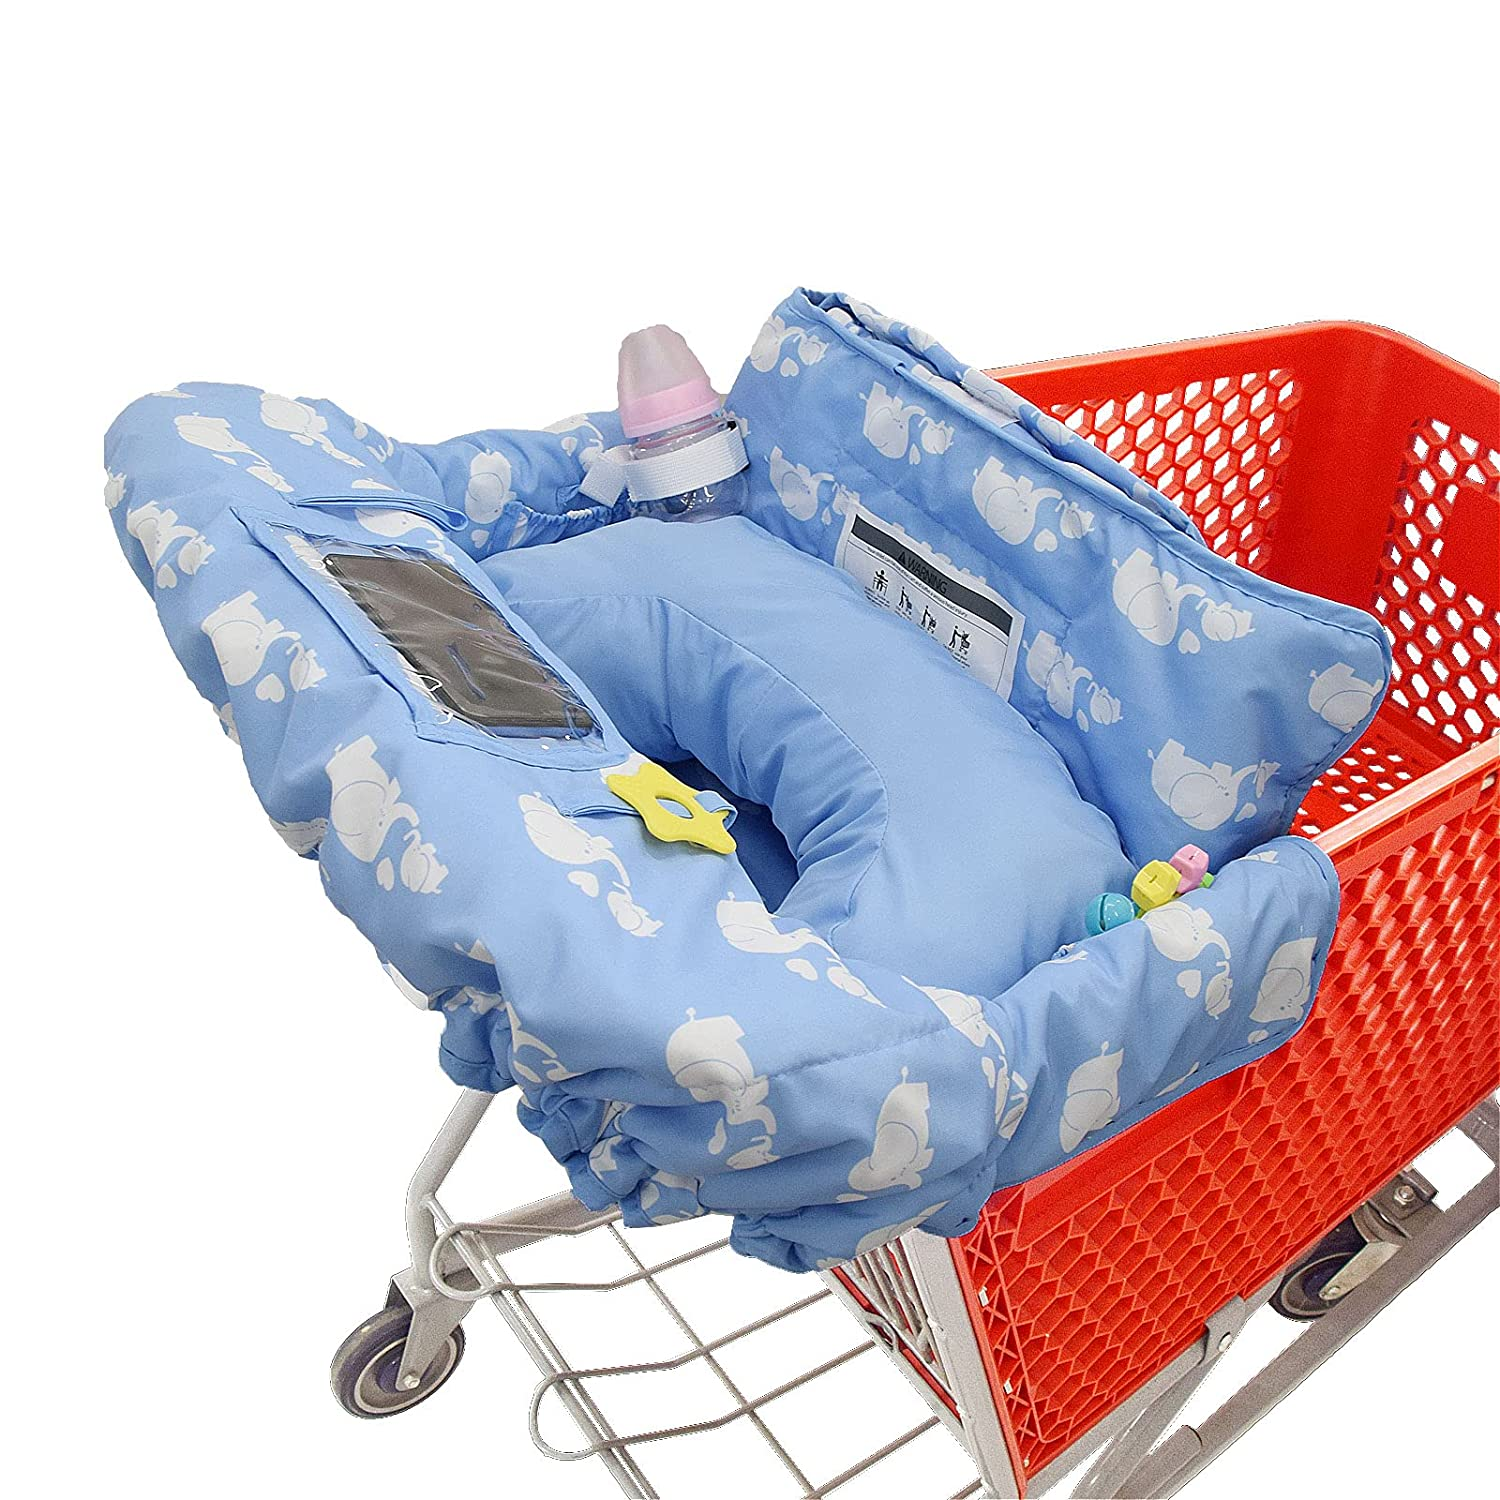 Shopping Cart Cover for Baby or Toddler with Soft Pillow/2-in-1 High Chair Cover/Fits Restaurant Highchair|Blue Elephant